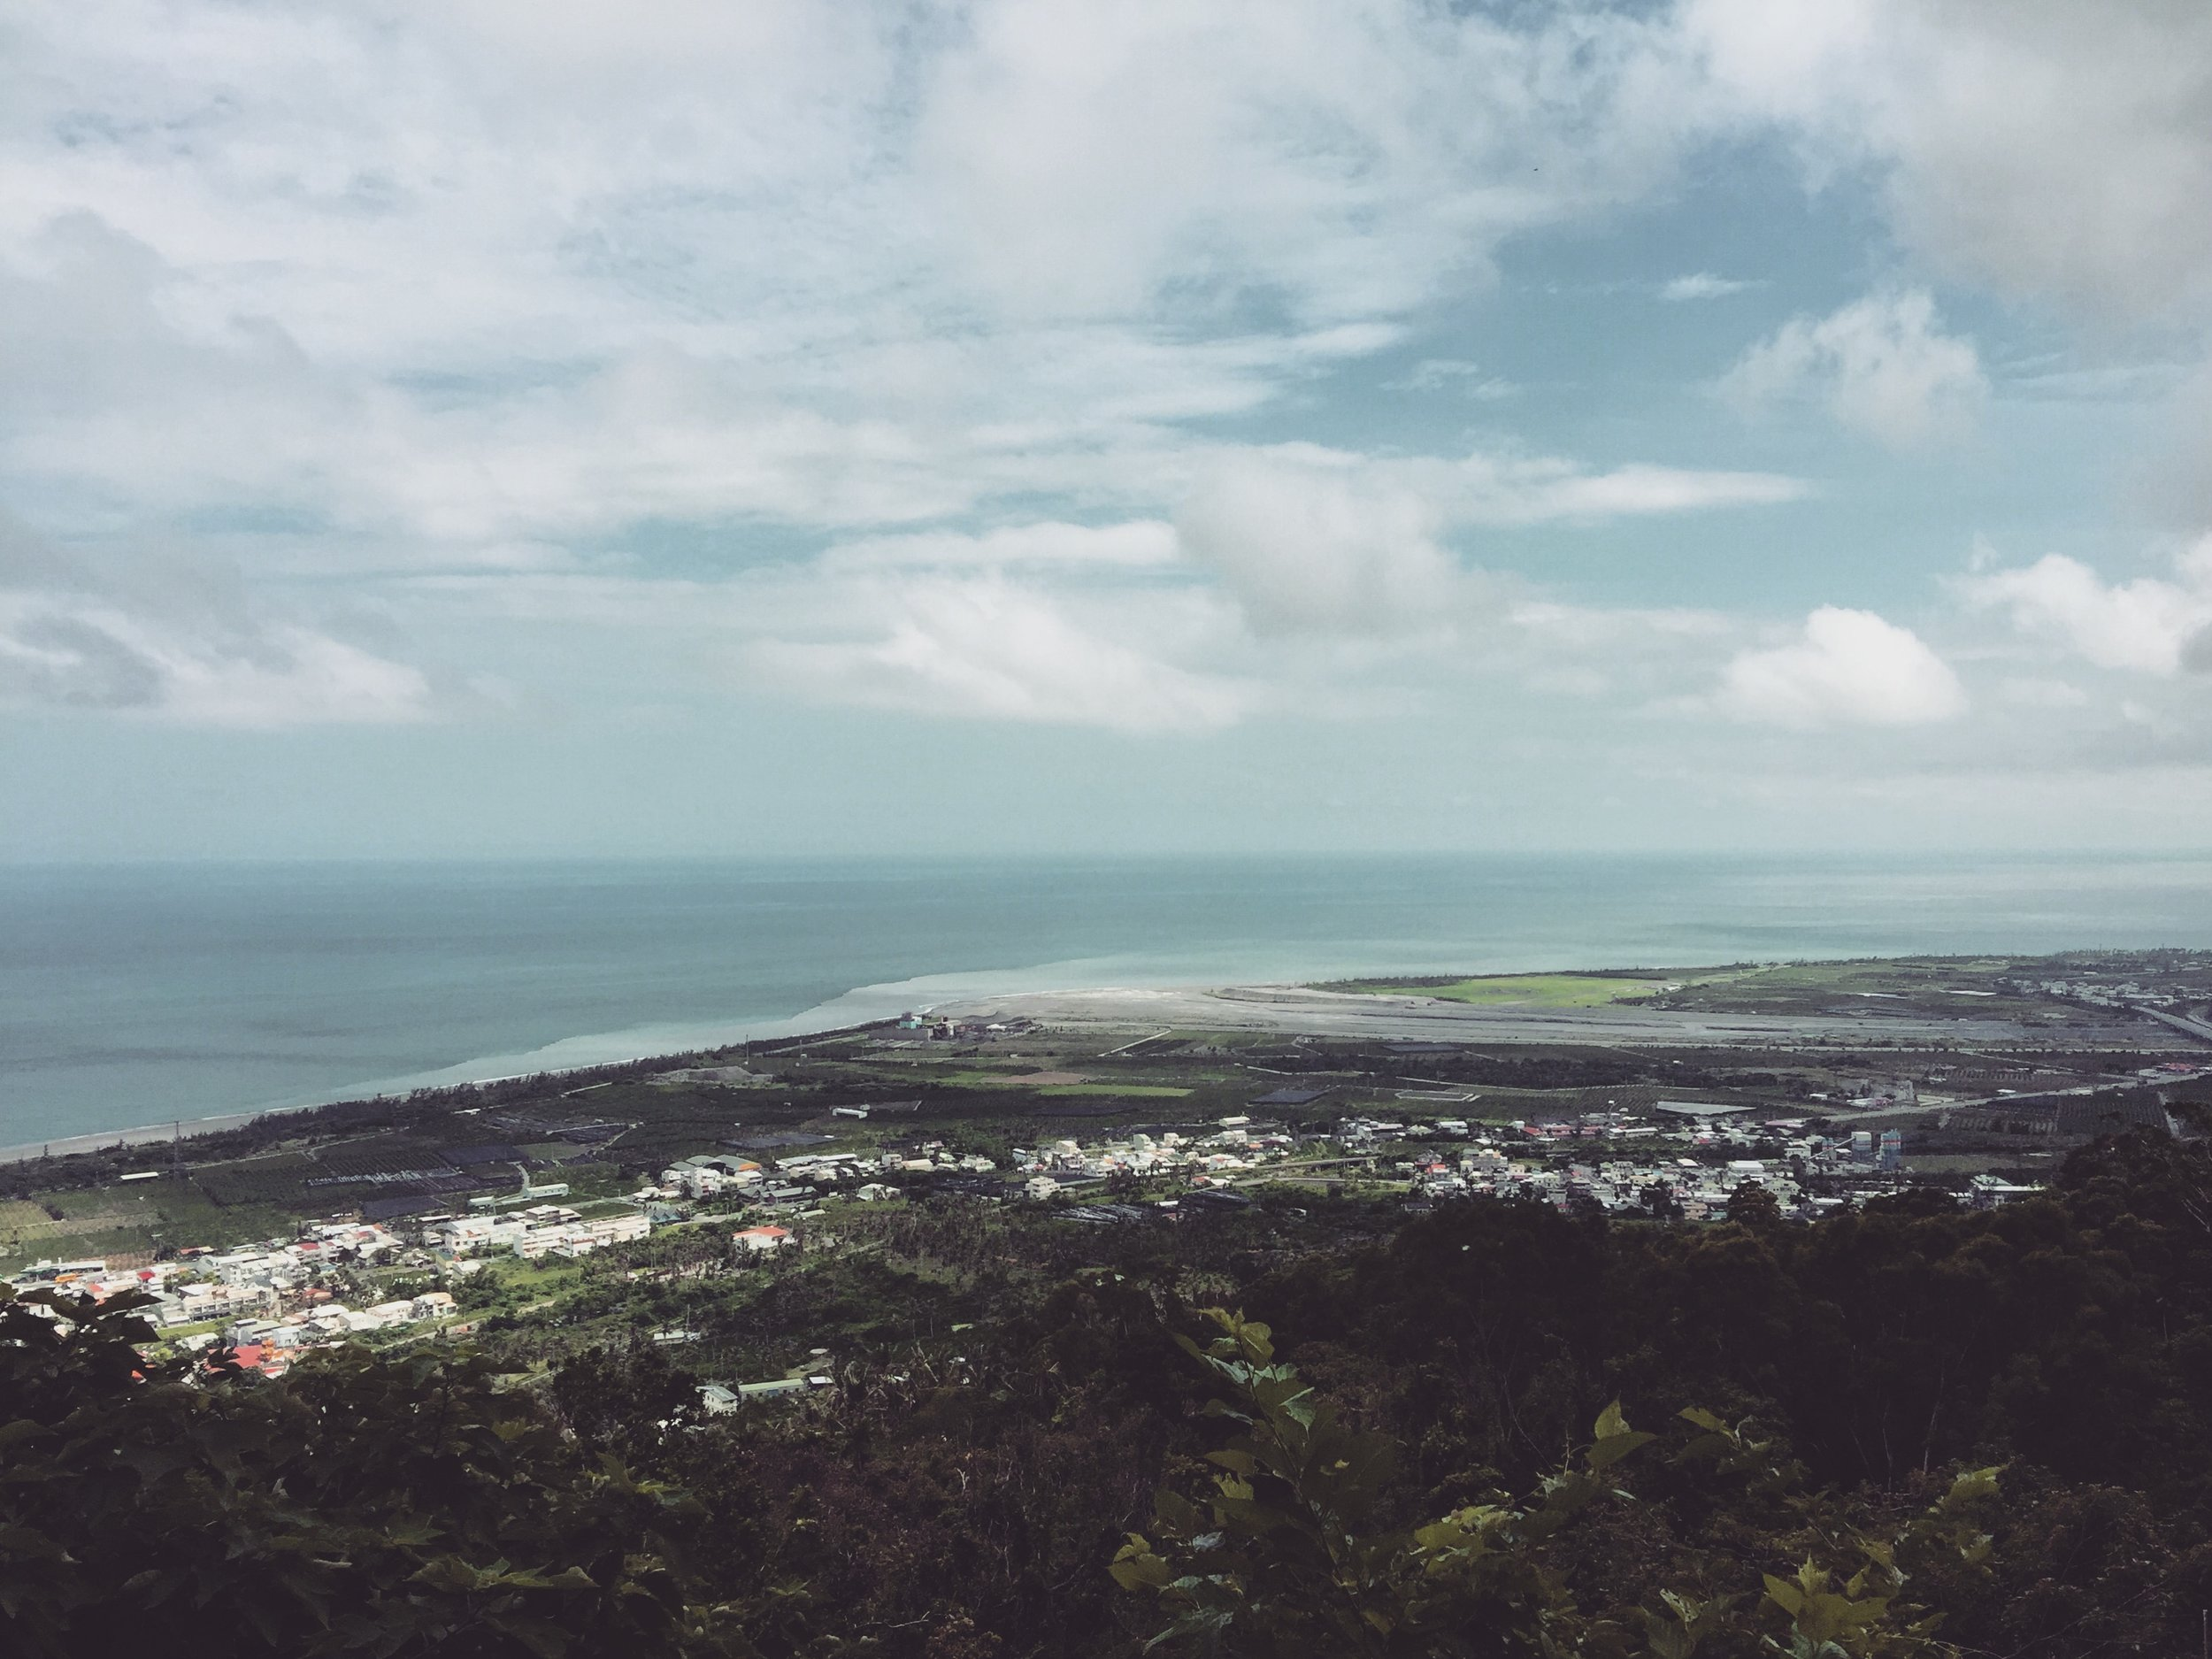 Looking down over Taimali, on the east coast of Taiwan.